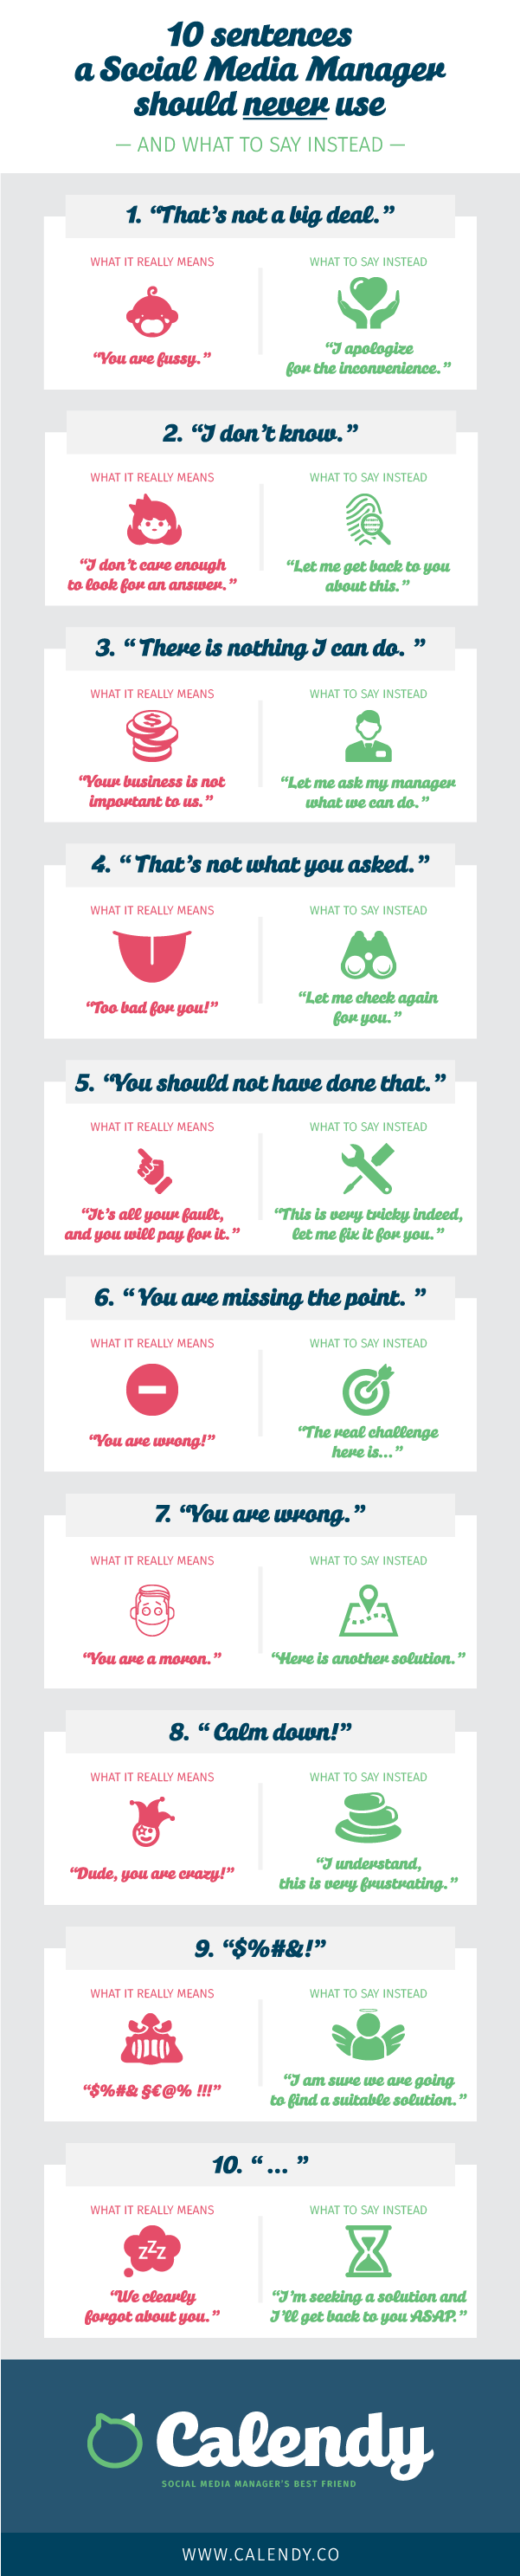 10 sentences a social media manager should never uses infographic